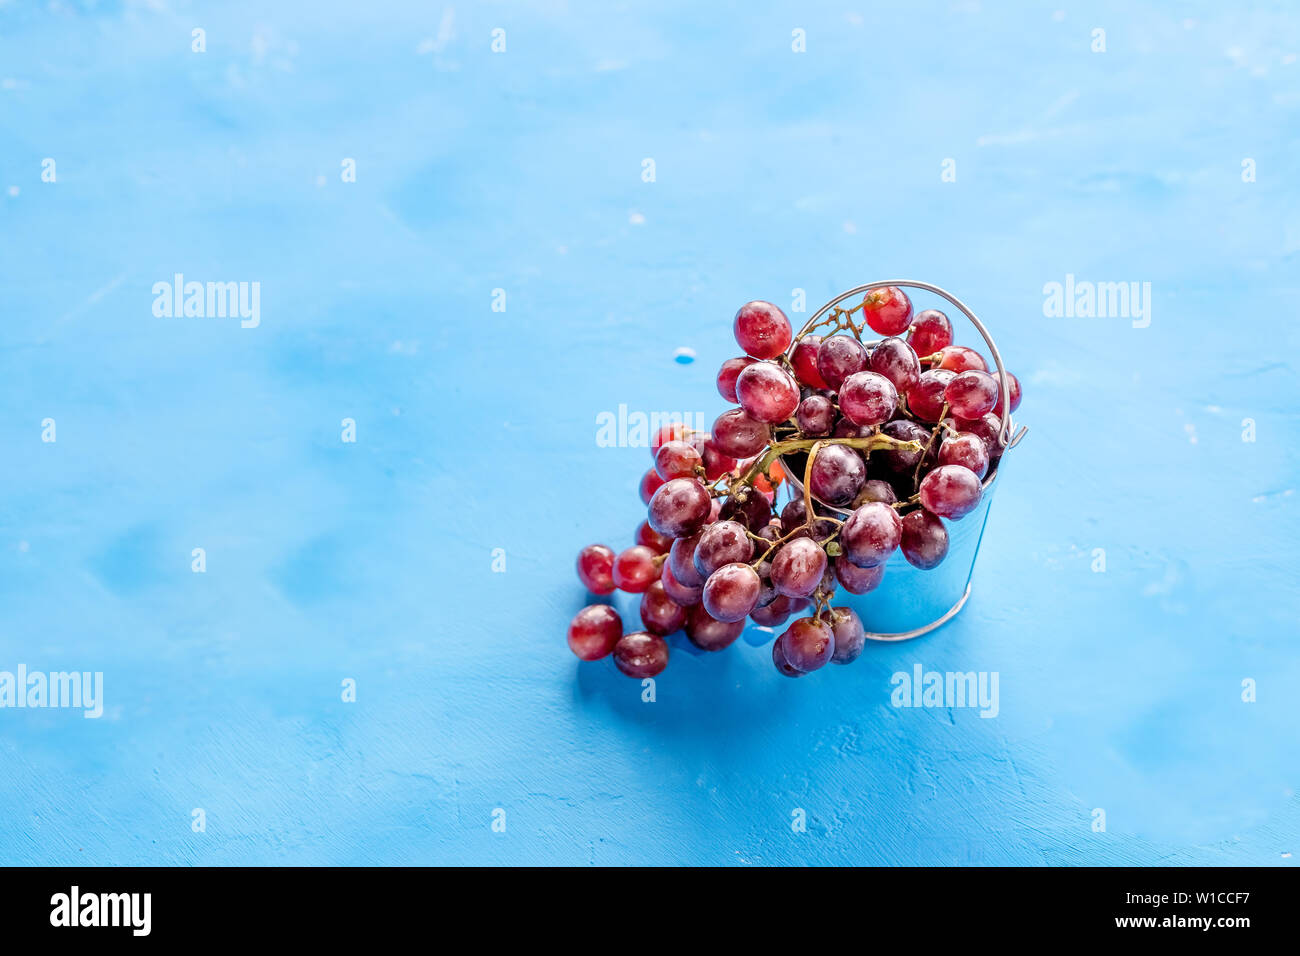 Red grape with water drops, closeup, isolated on blue background.fresh red grapes. Harvest time. Summer fresh berries, healthy food,wine production Stock Photo